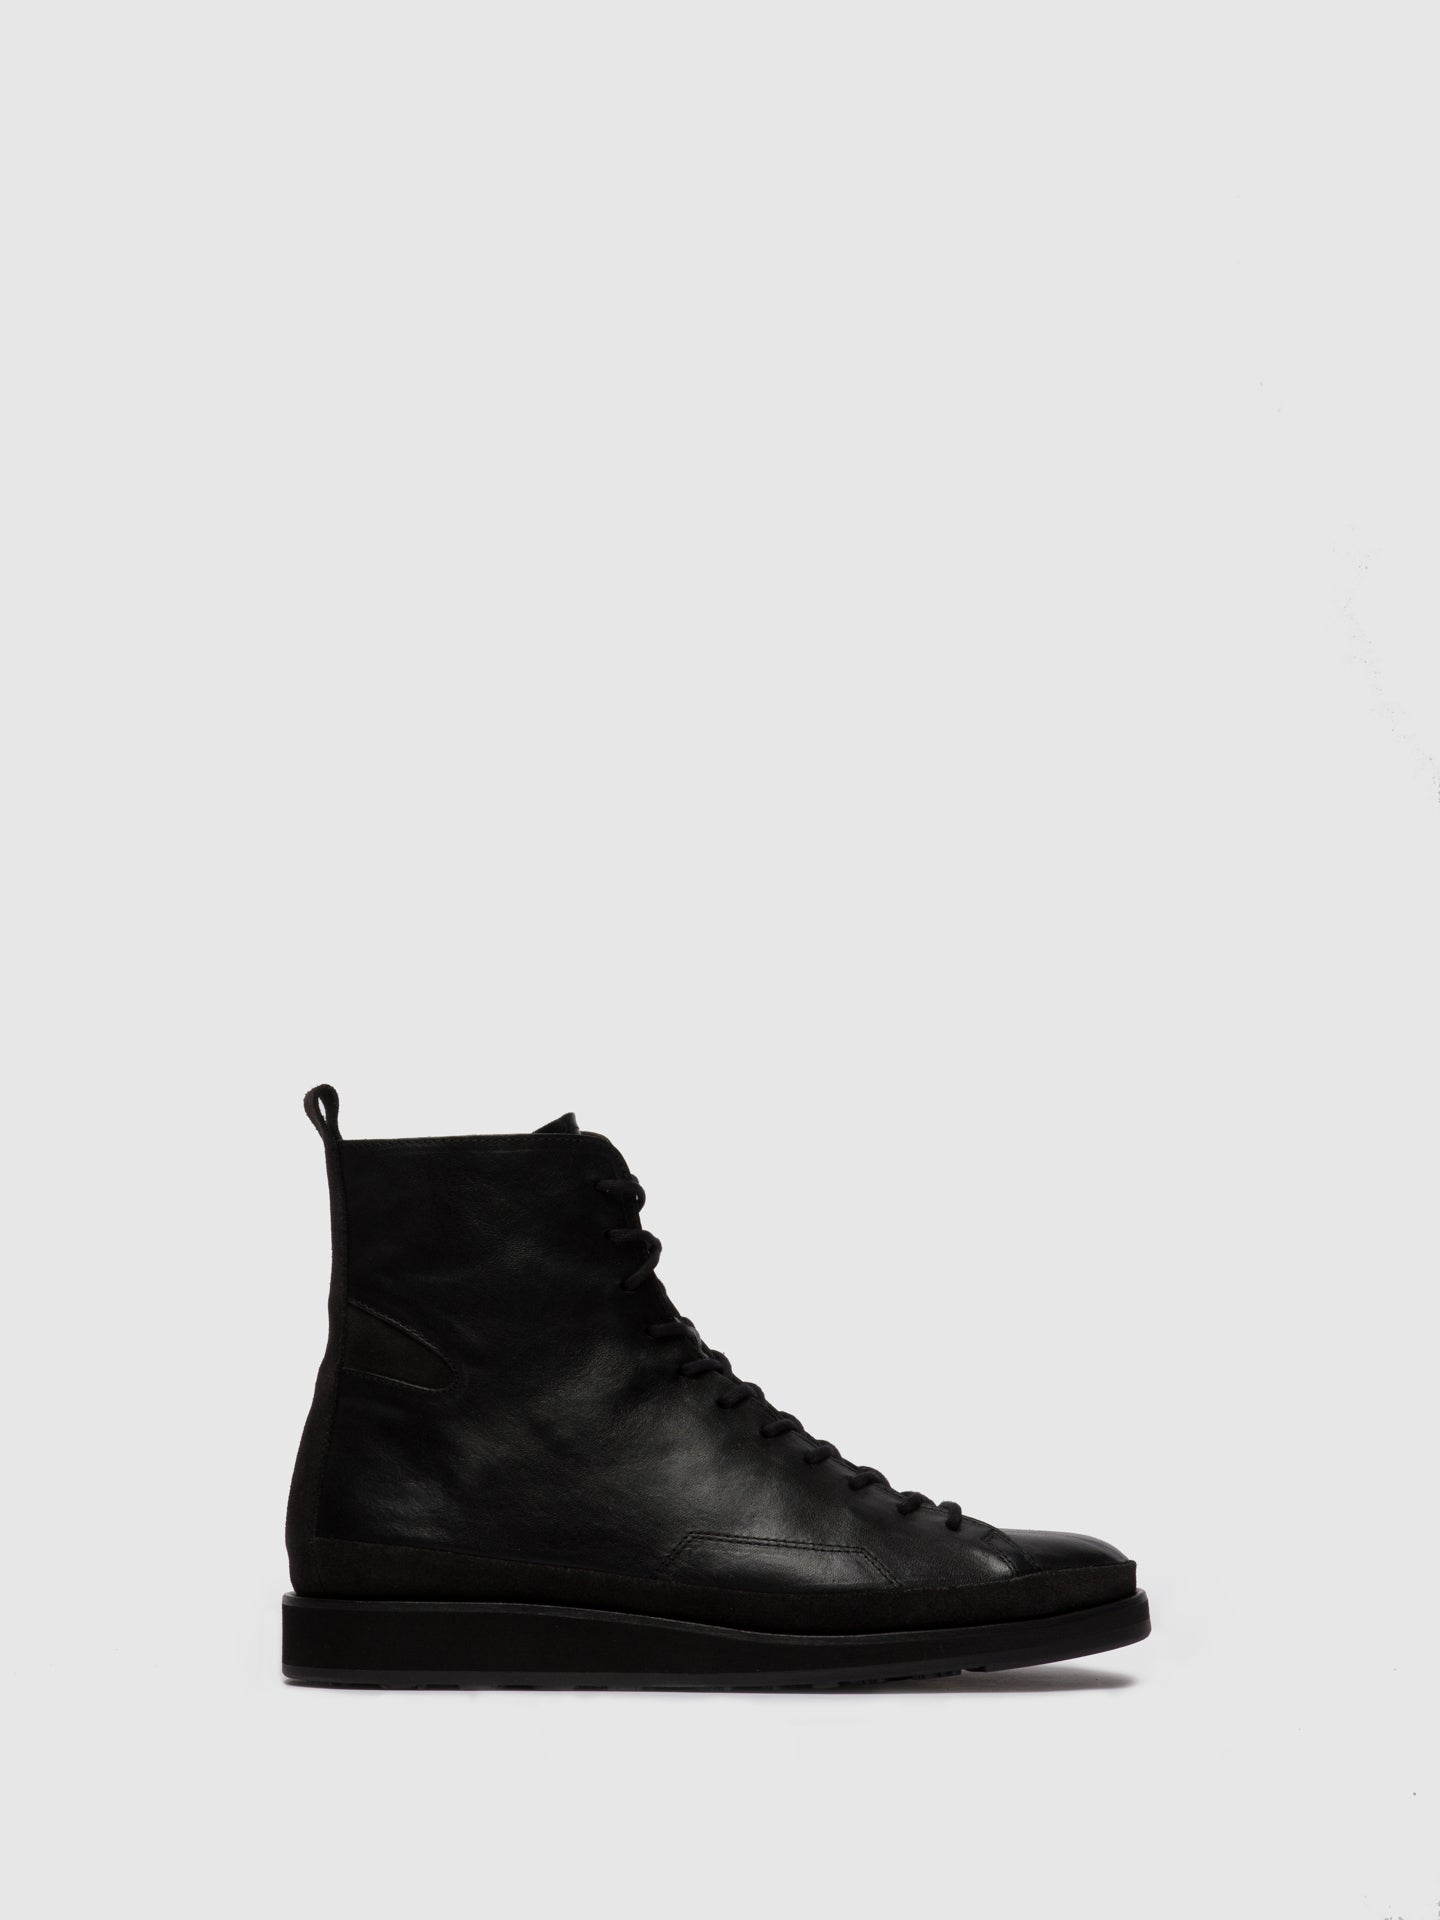 Fly London Lace-up Ankle Boots JOKA700FLY ESTIGMA/OILSUEDE(VEGETAL) BLACK/DIESEL